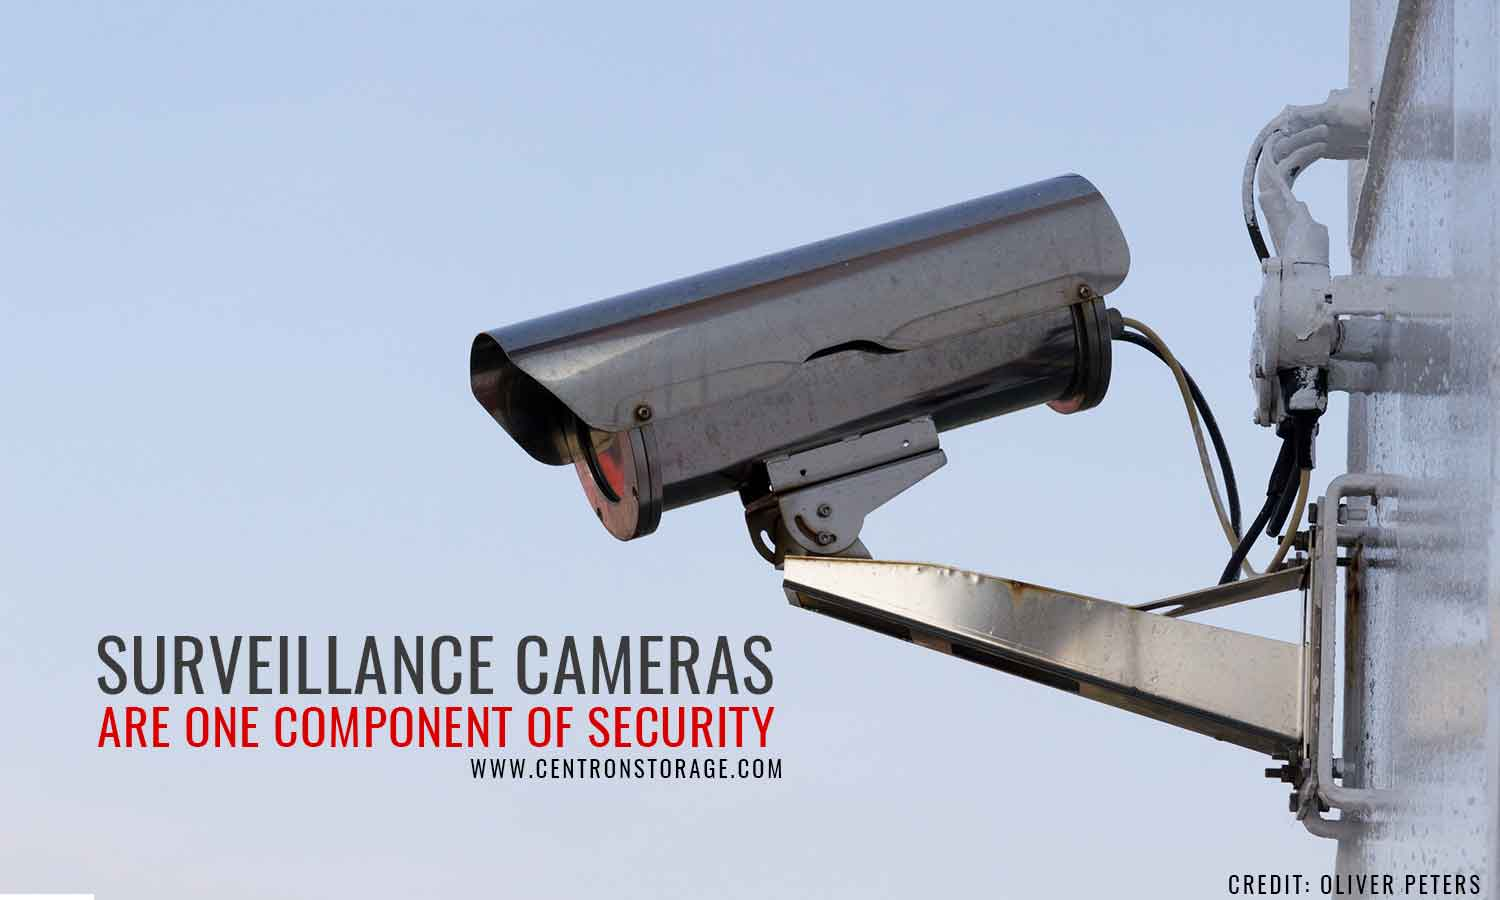 Surveillance cameras are one component of security